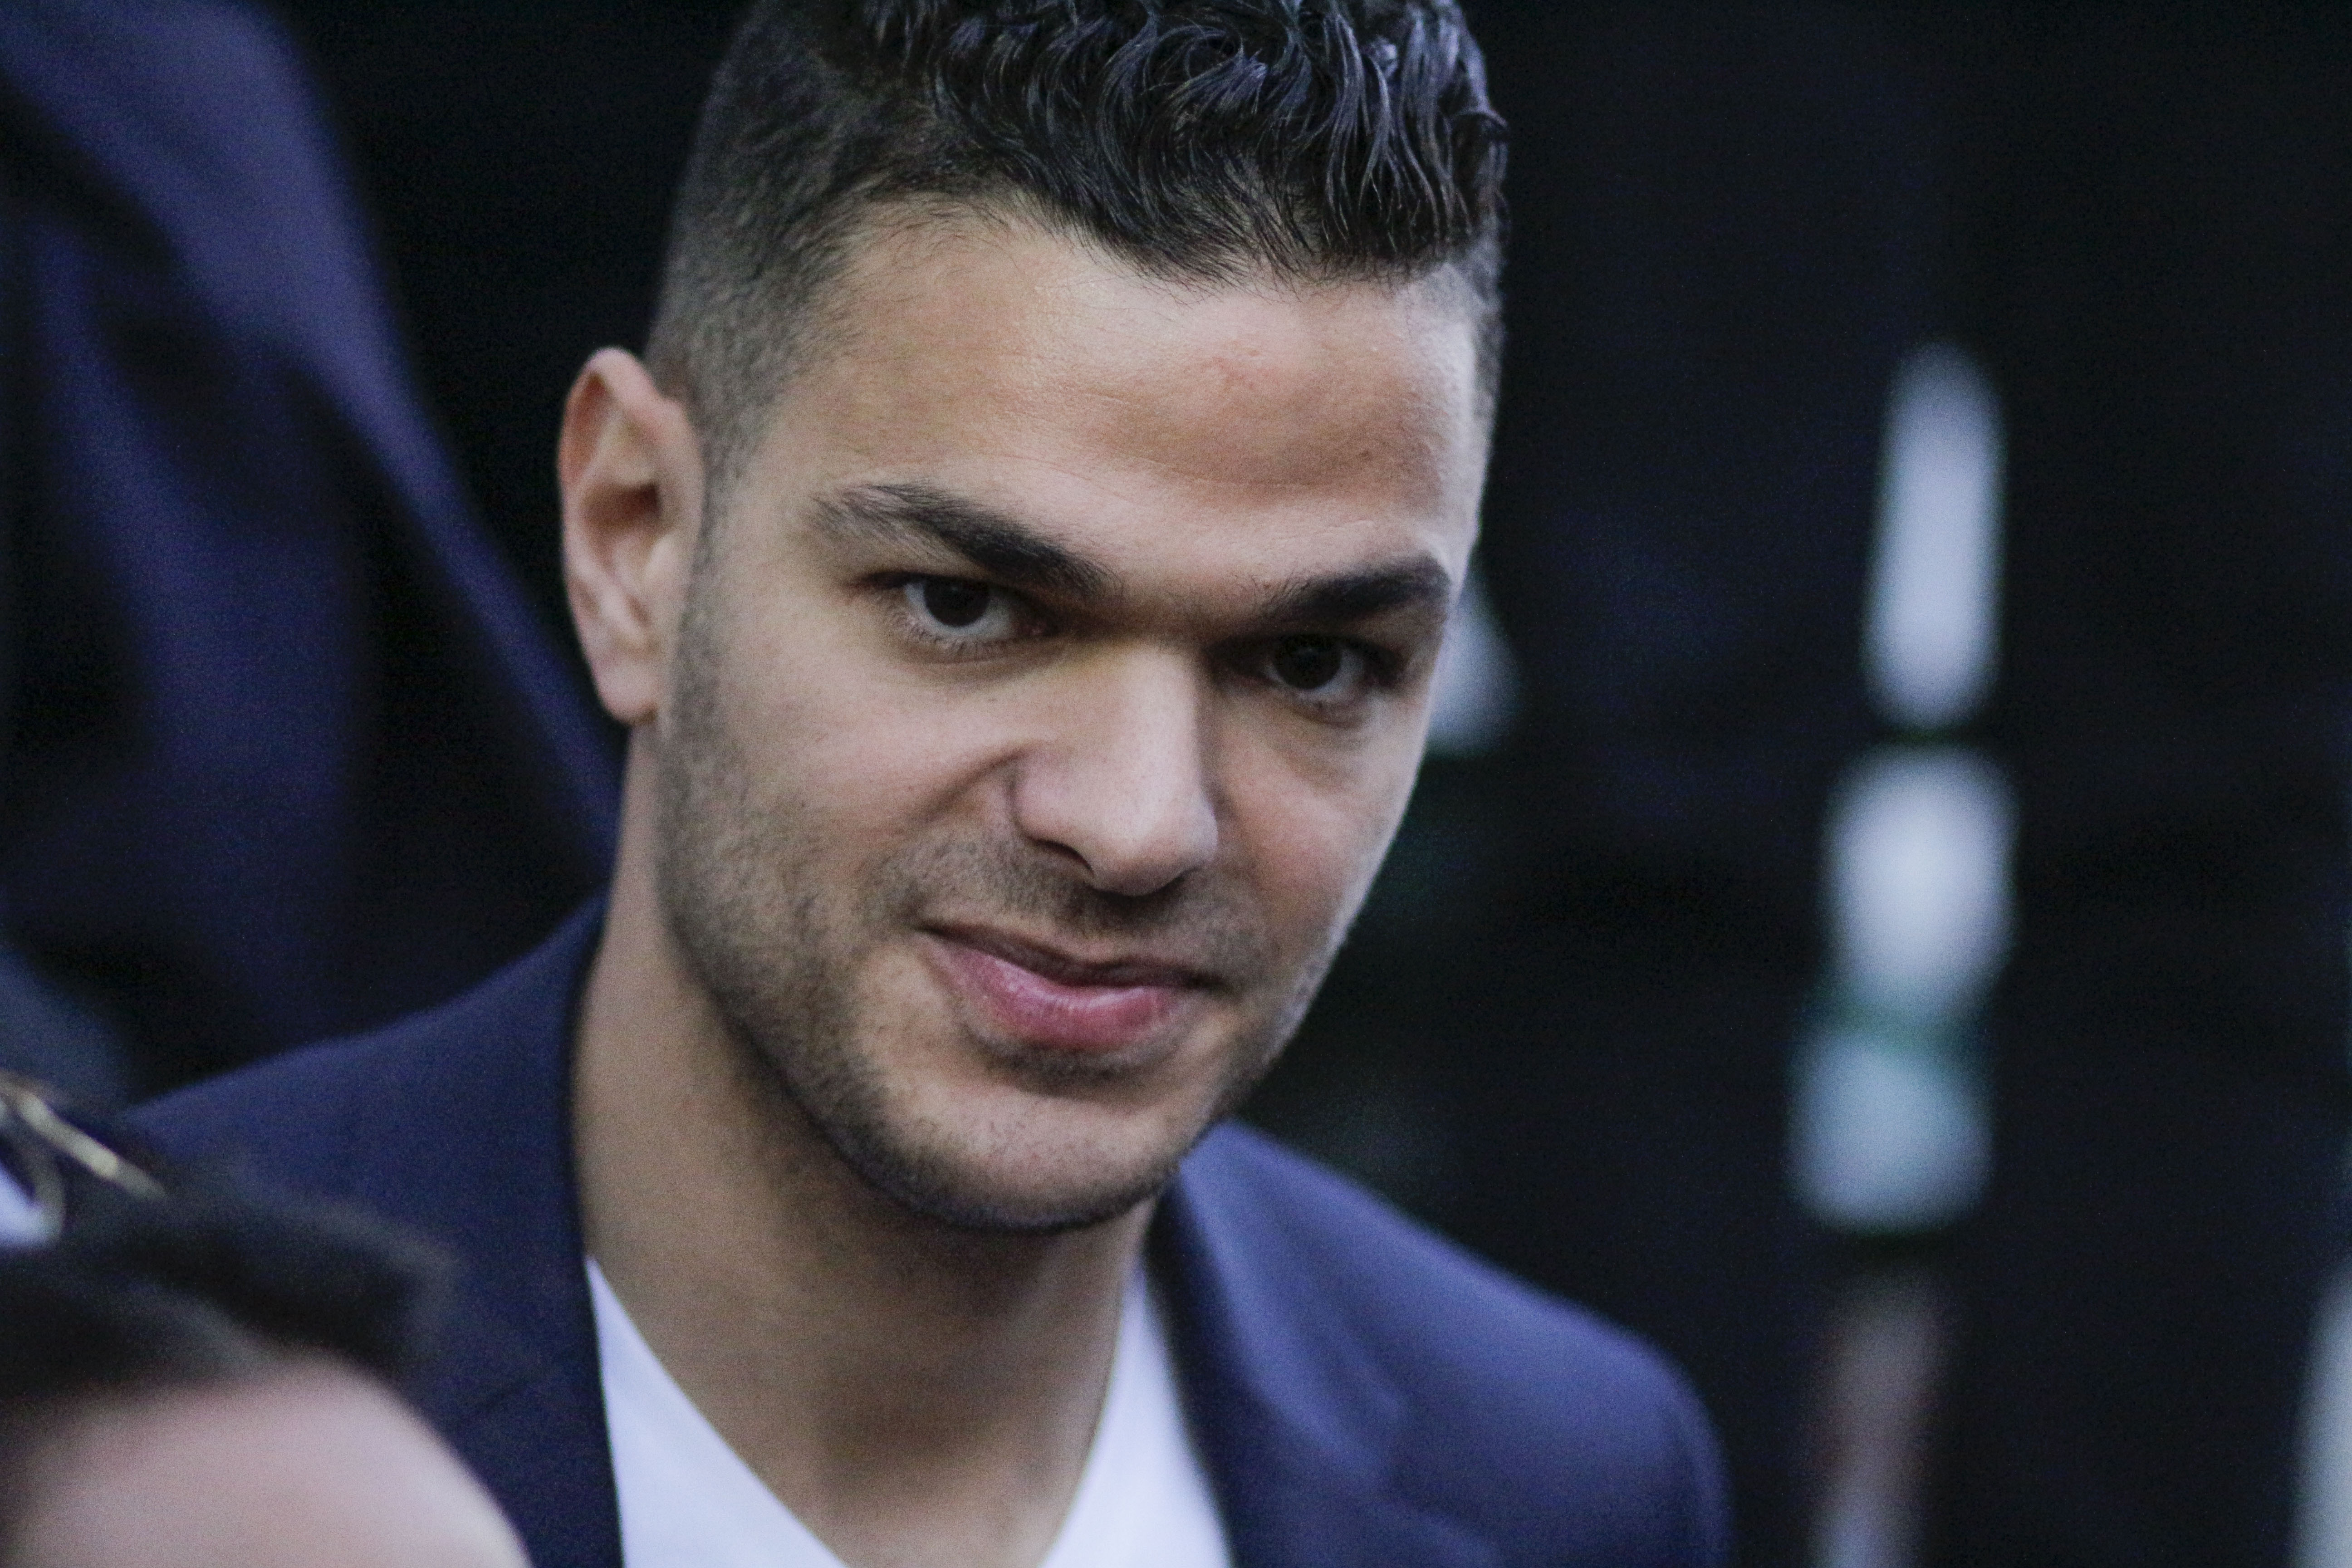 Football - Coupe du monde - Ben Arfa invite Deschamps à partir